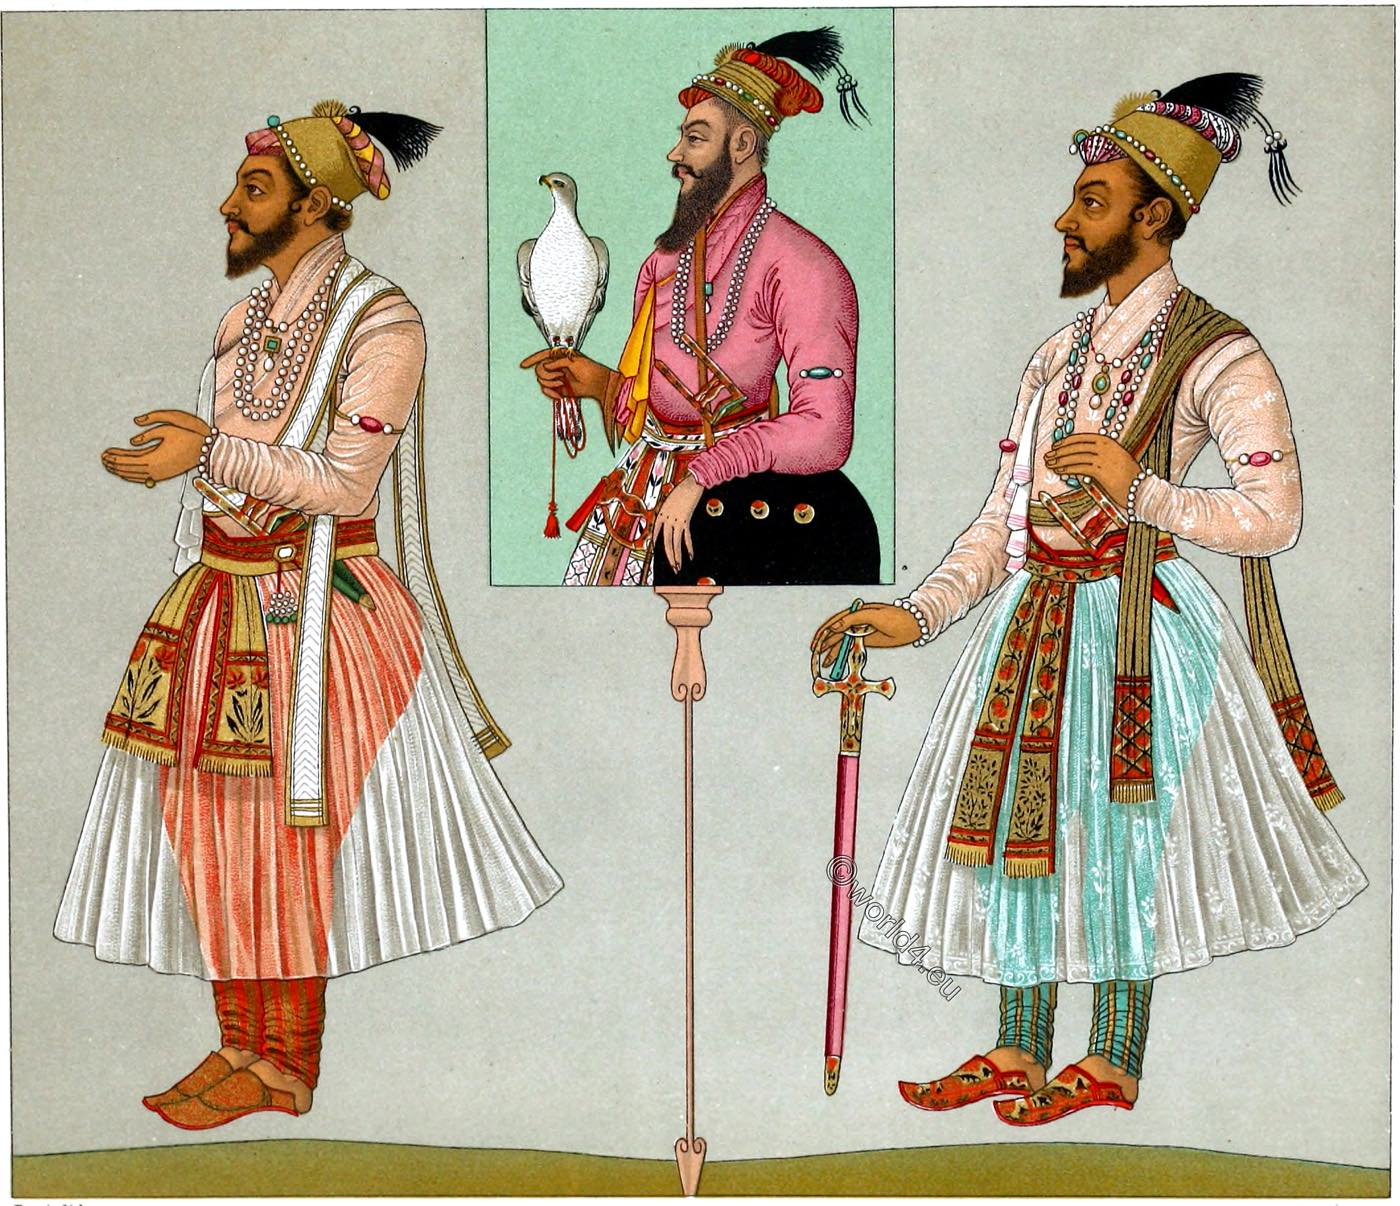 Grand Moguls, India, Emperor, Moghul, Rajput, Prince, Dresses, clothing